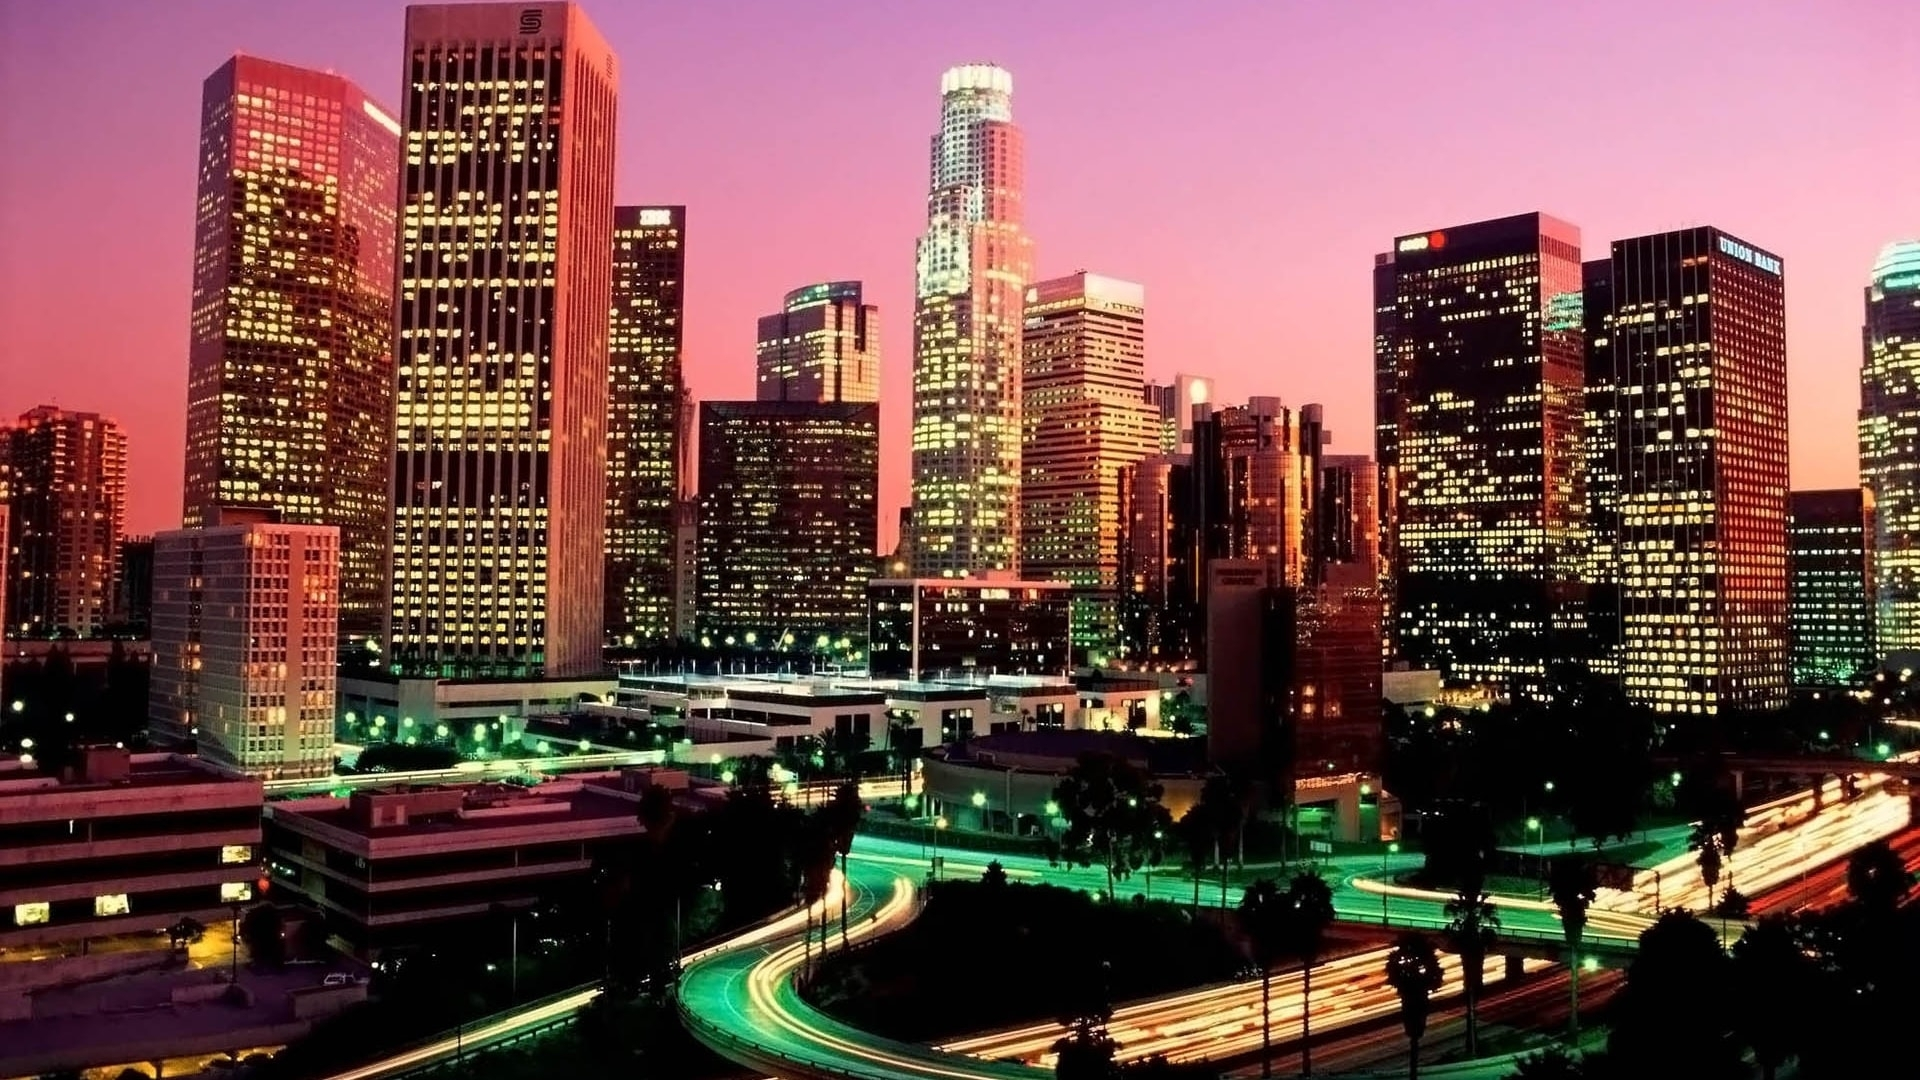 los angeles hd desktop wallpapers | 7wallpapers